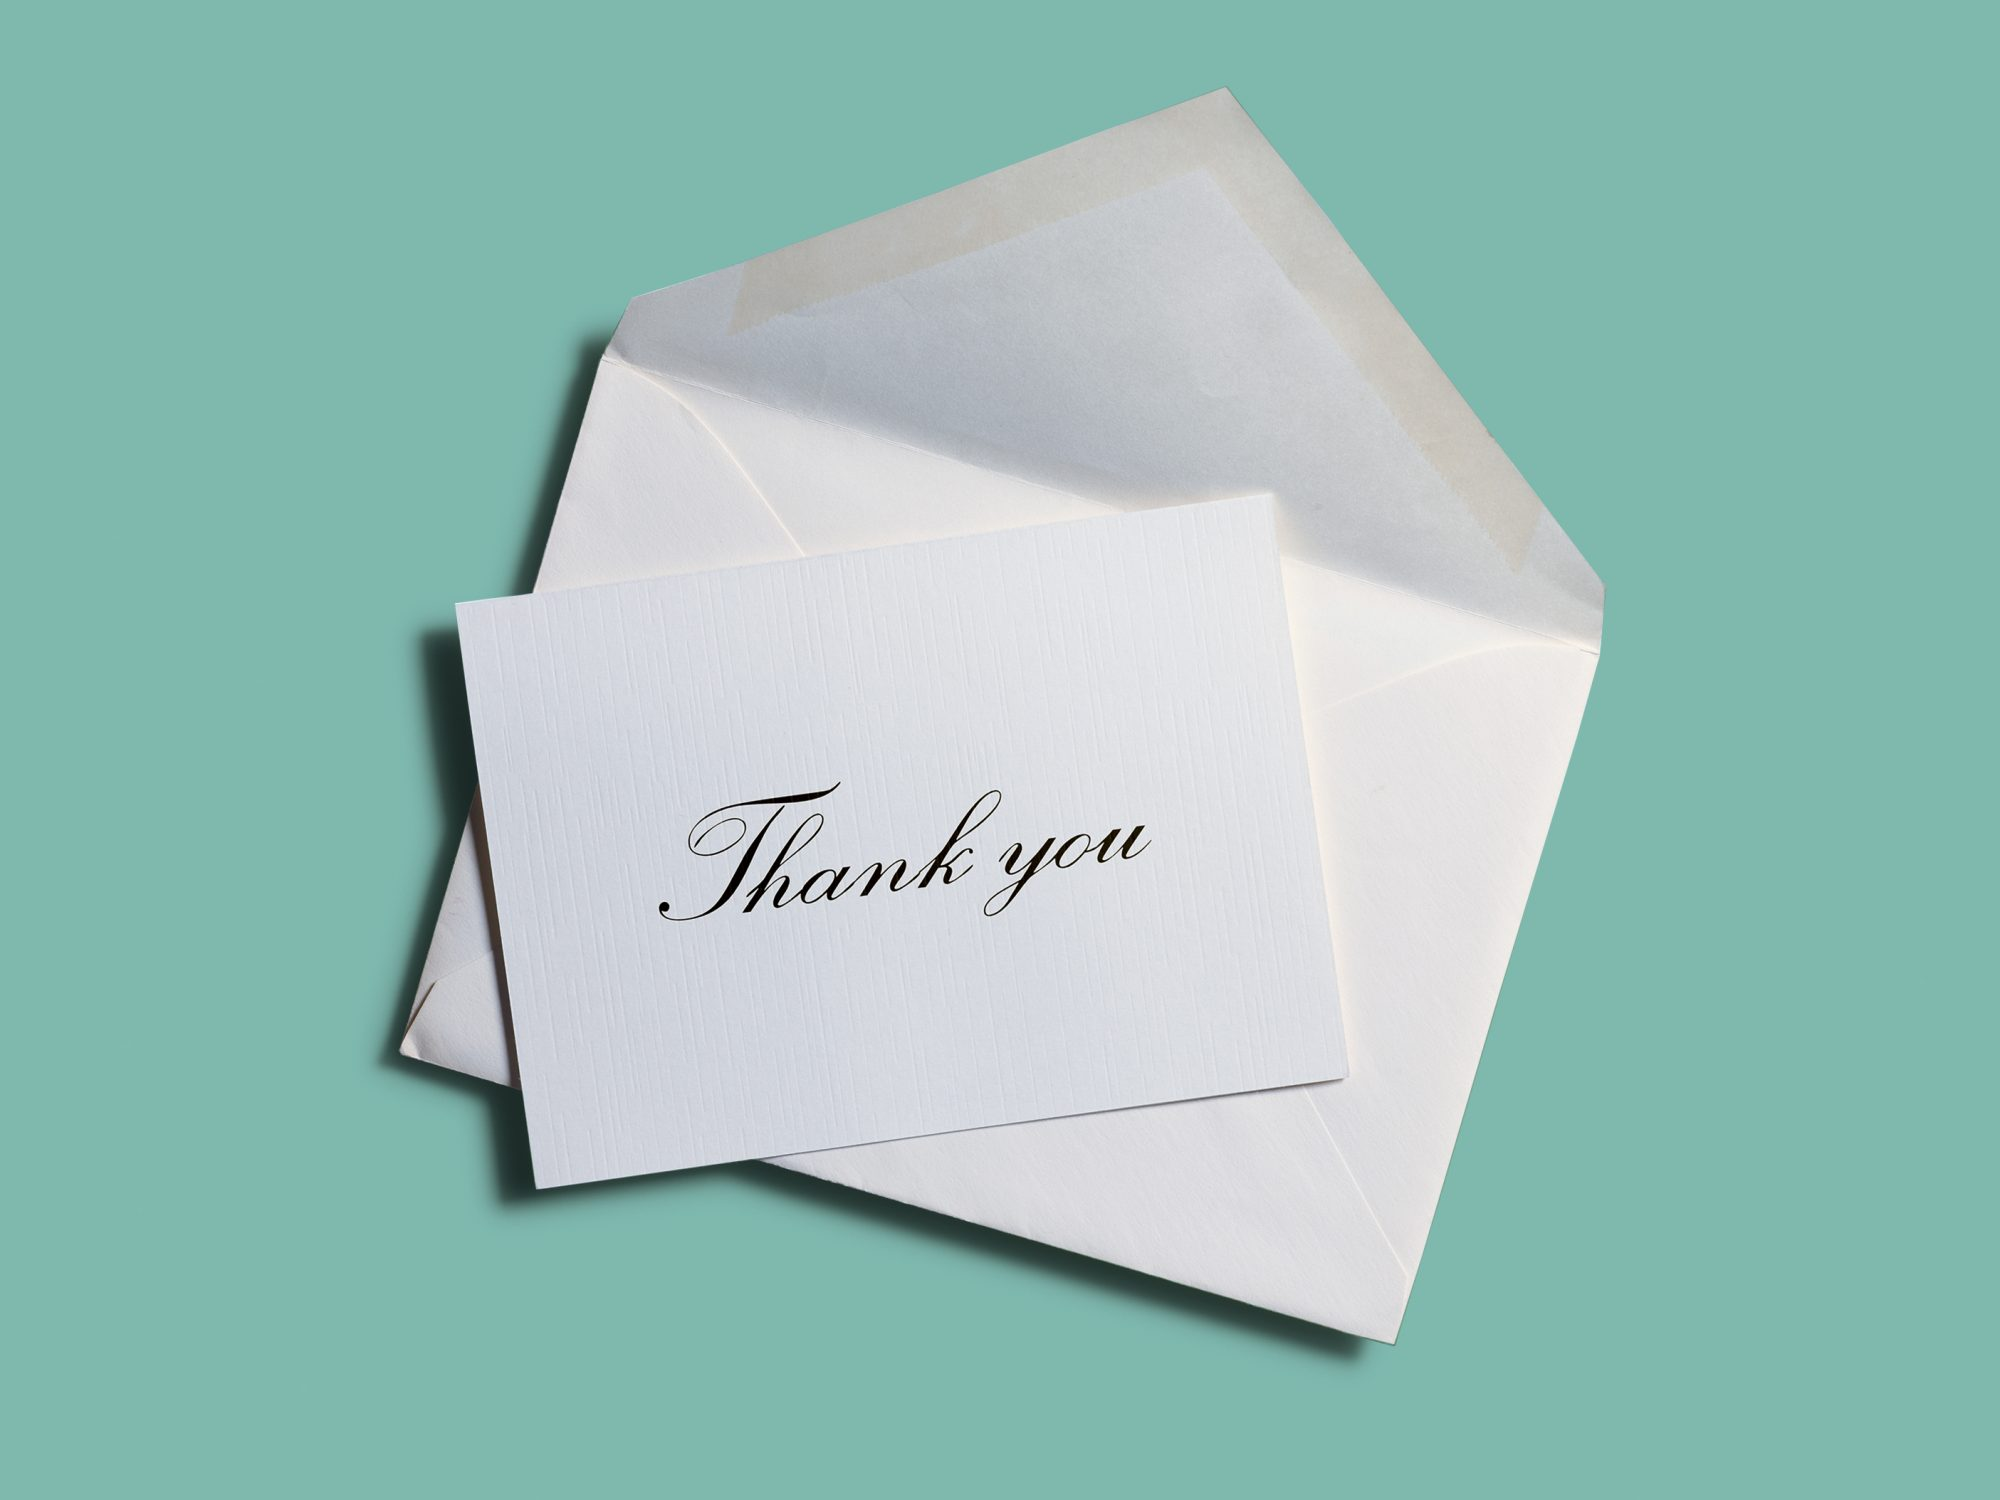 thank-you note on a teal background